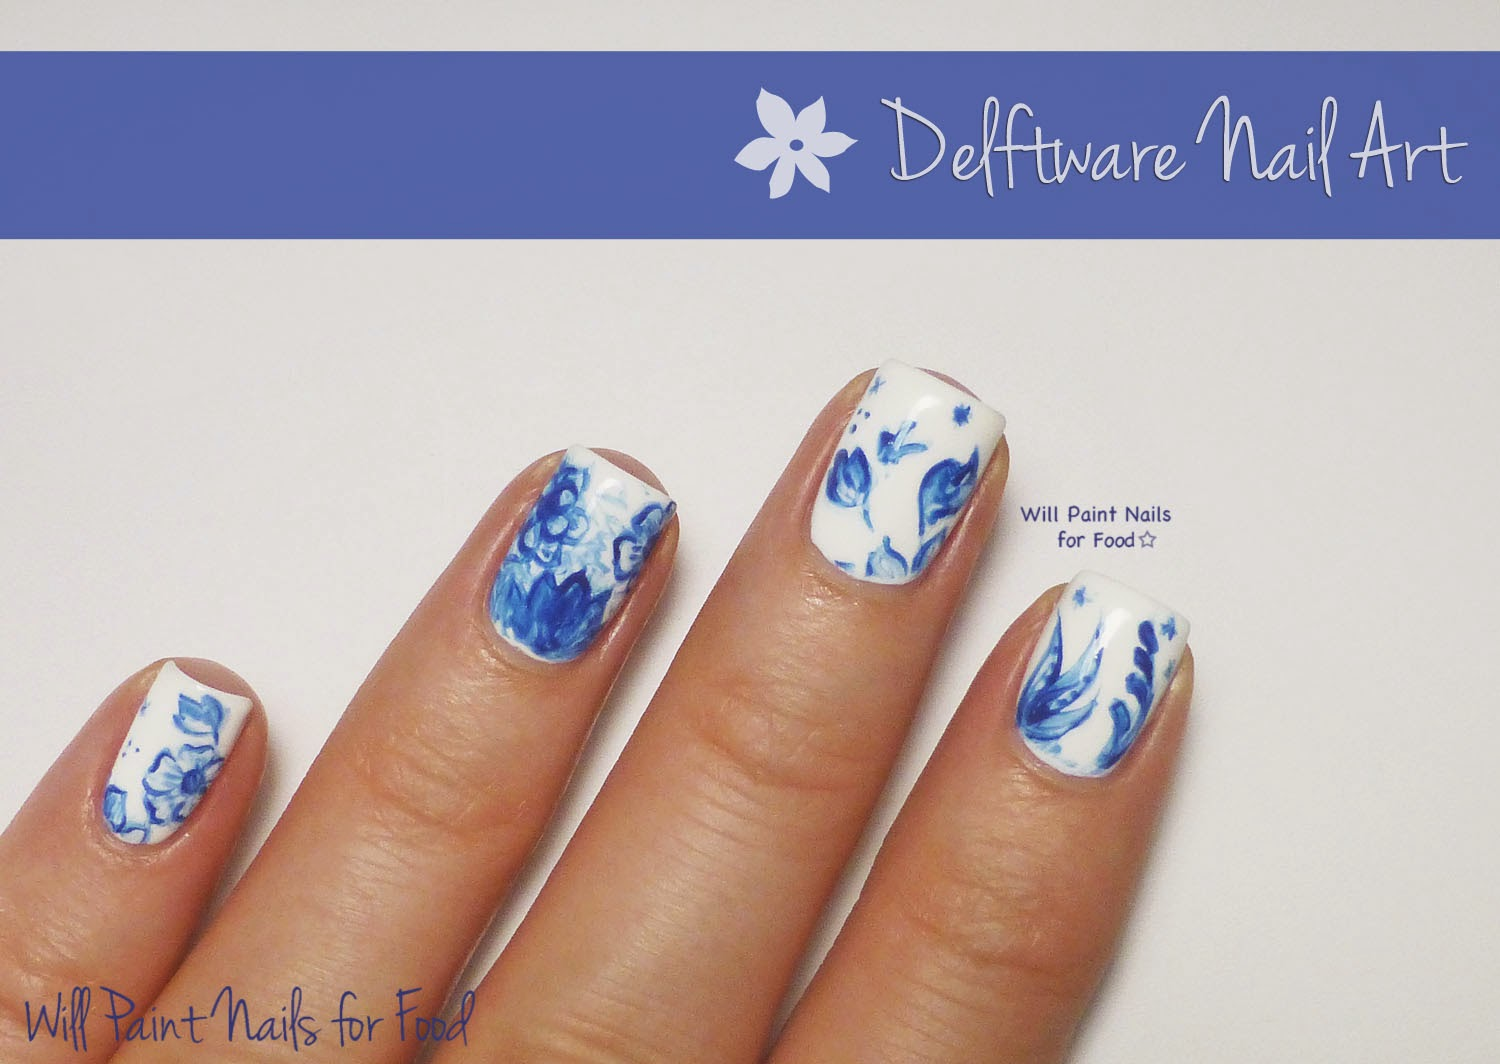 Delftware nail art